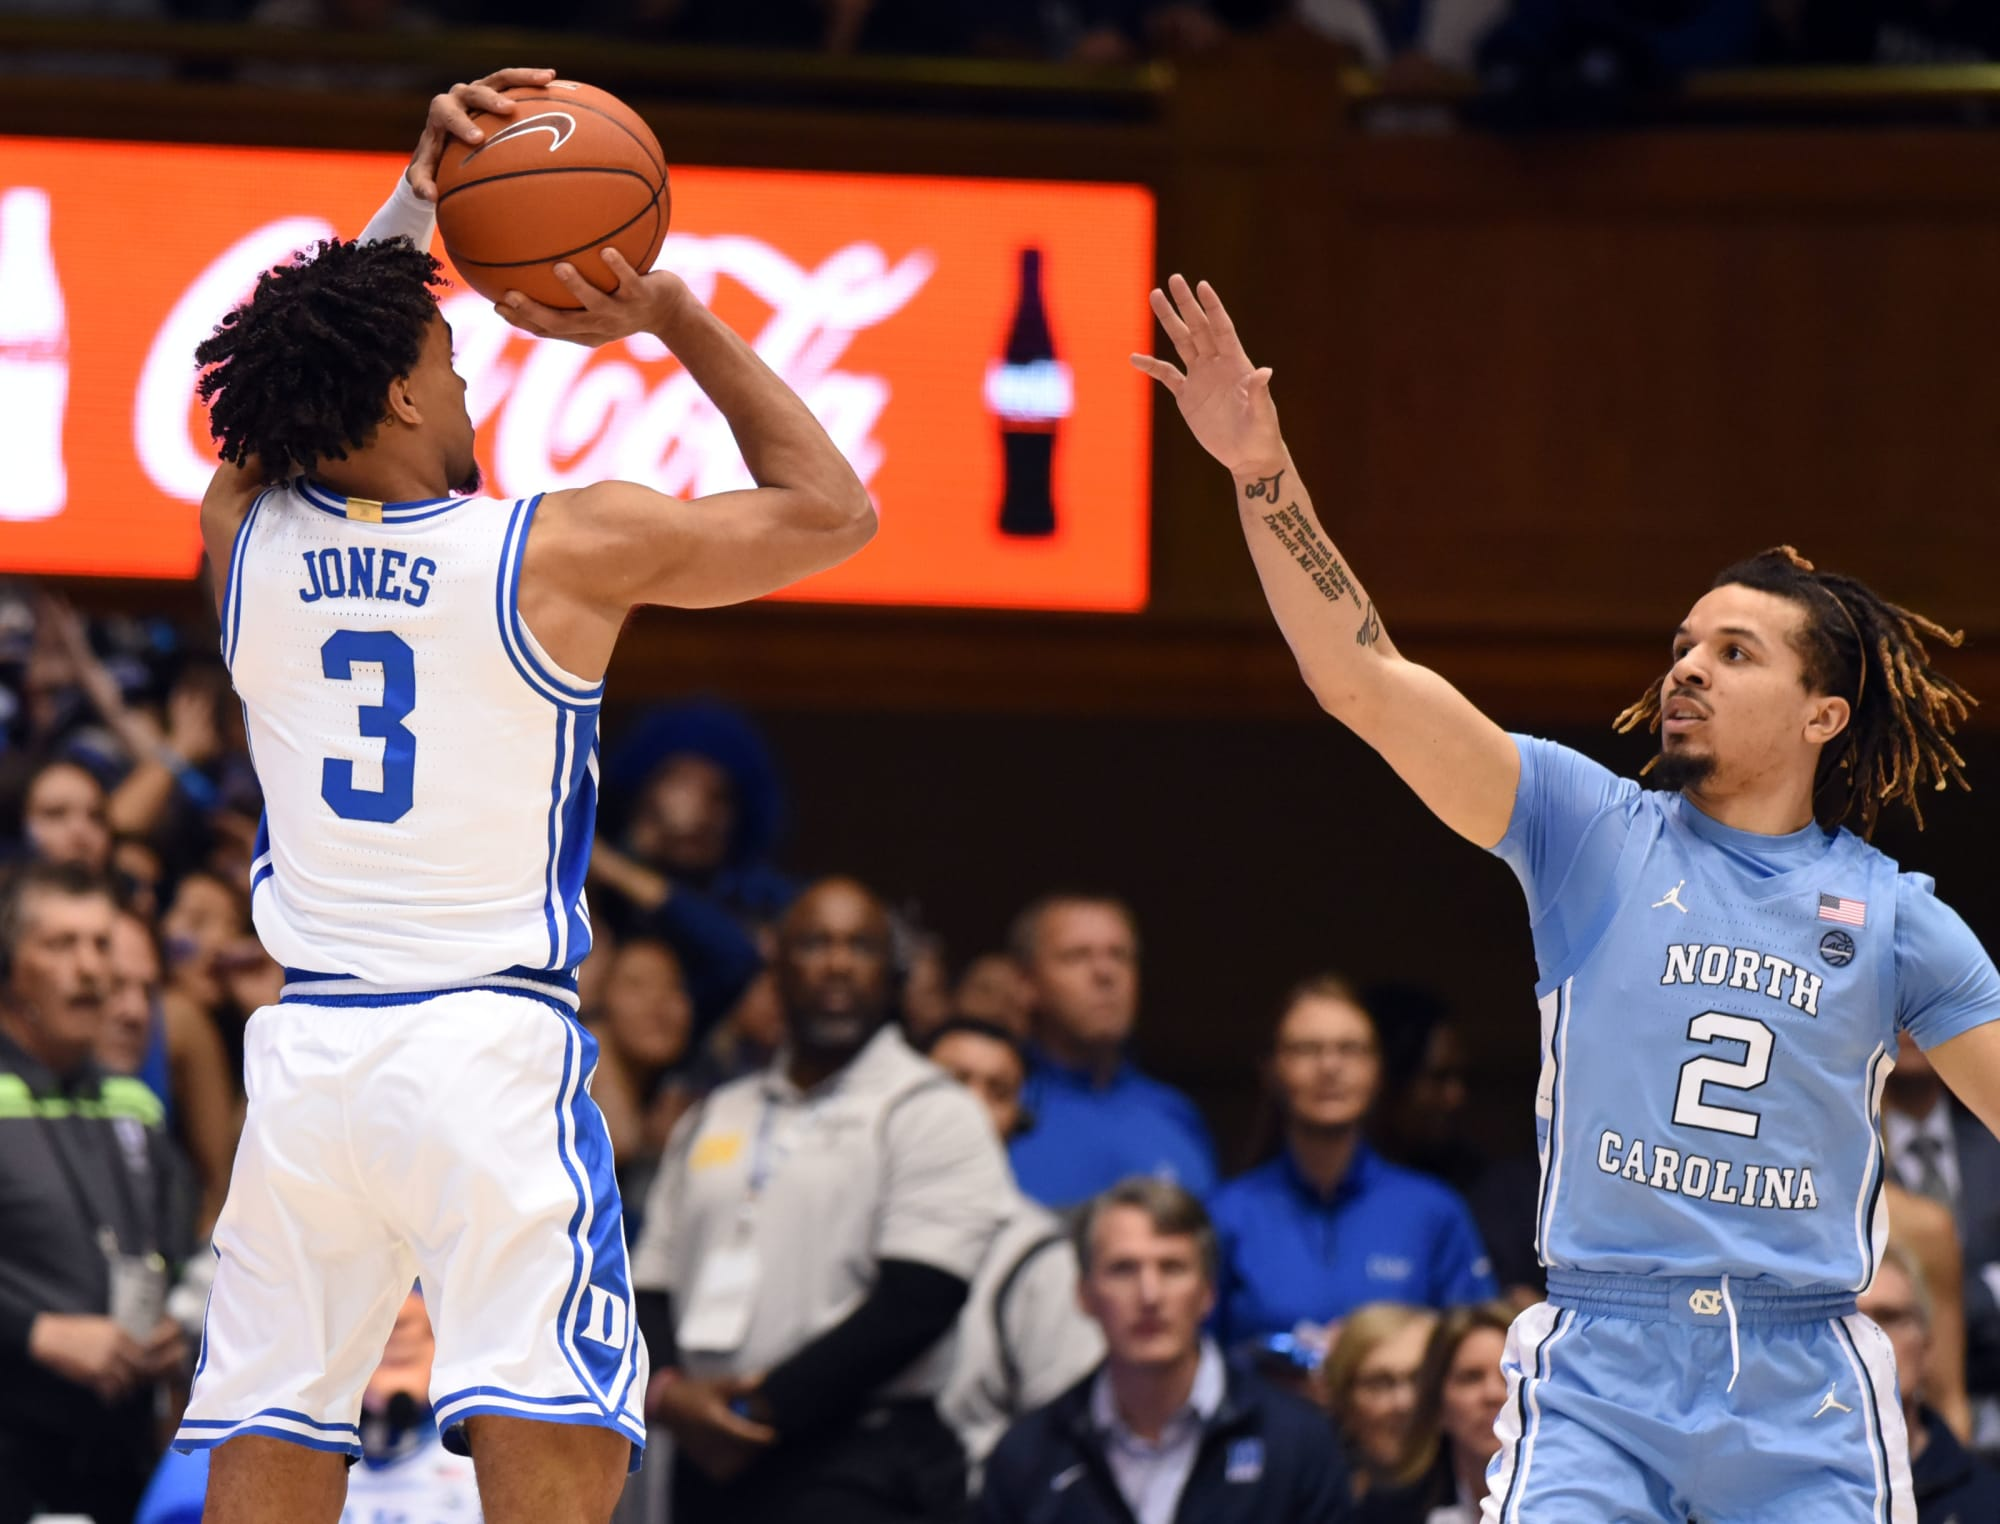 Duke basketball standout may have cost former UNC player millions